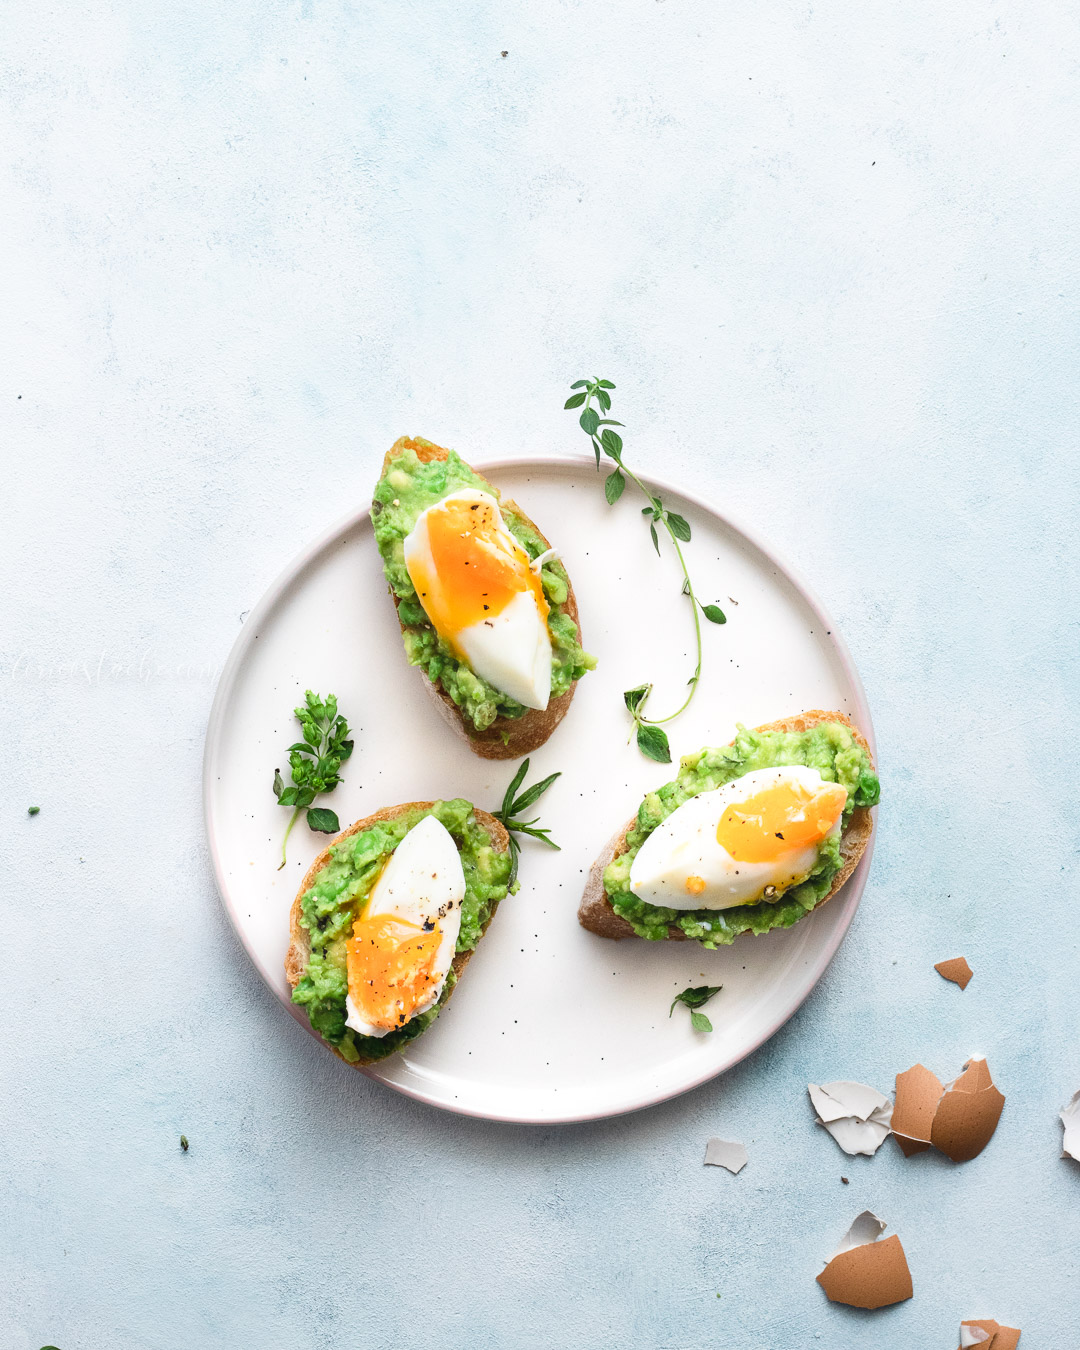 Avocado & Peas Toast With Soft Boiled Eggs